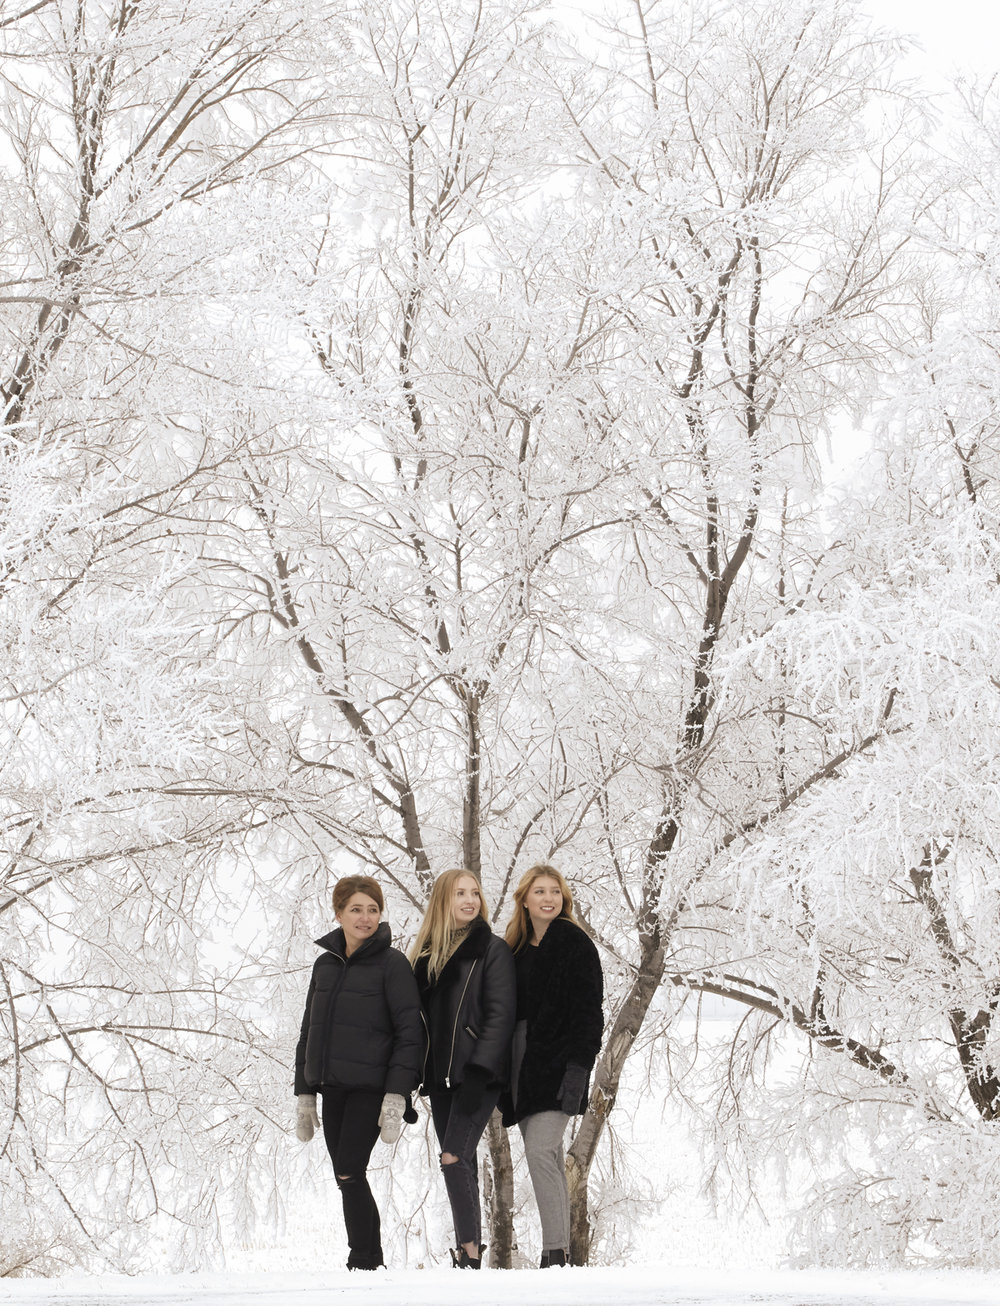 cindy-moleski-professional-family-portrait-photographer-saskatoon-saskatchewan-snowy-winter-wonderland-29456-FB0033e.jpg